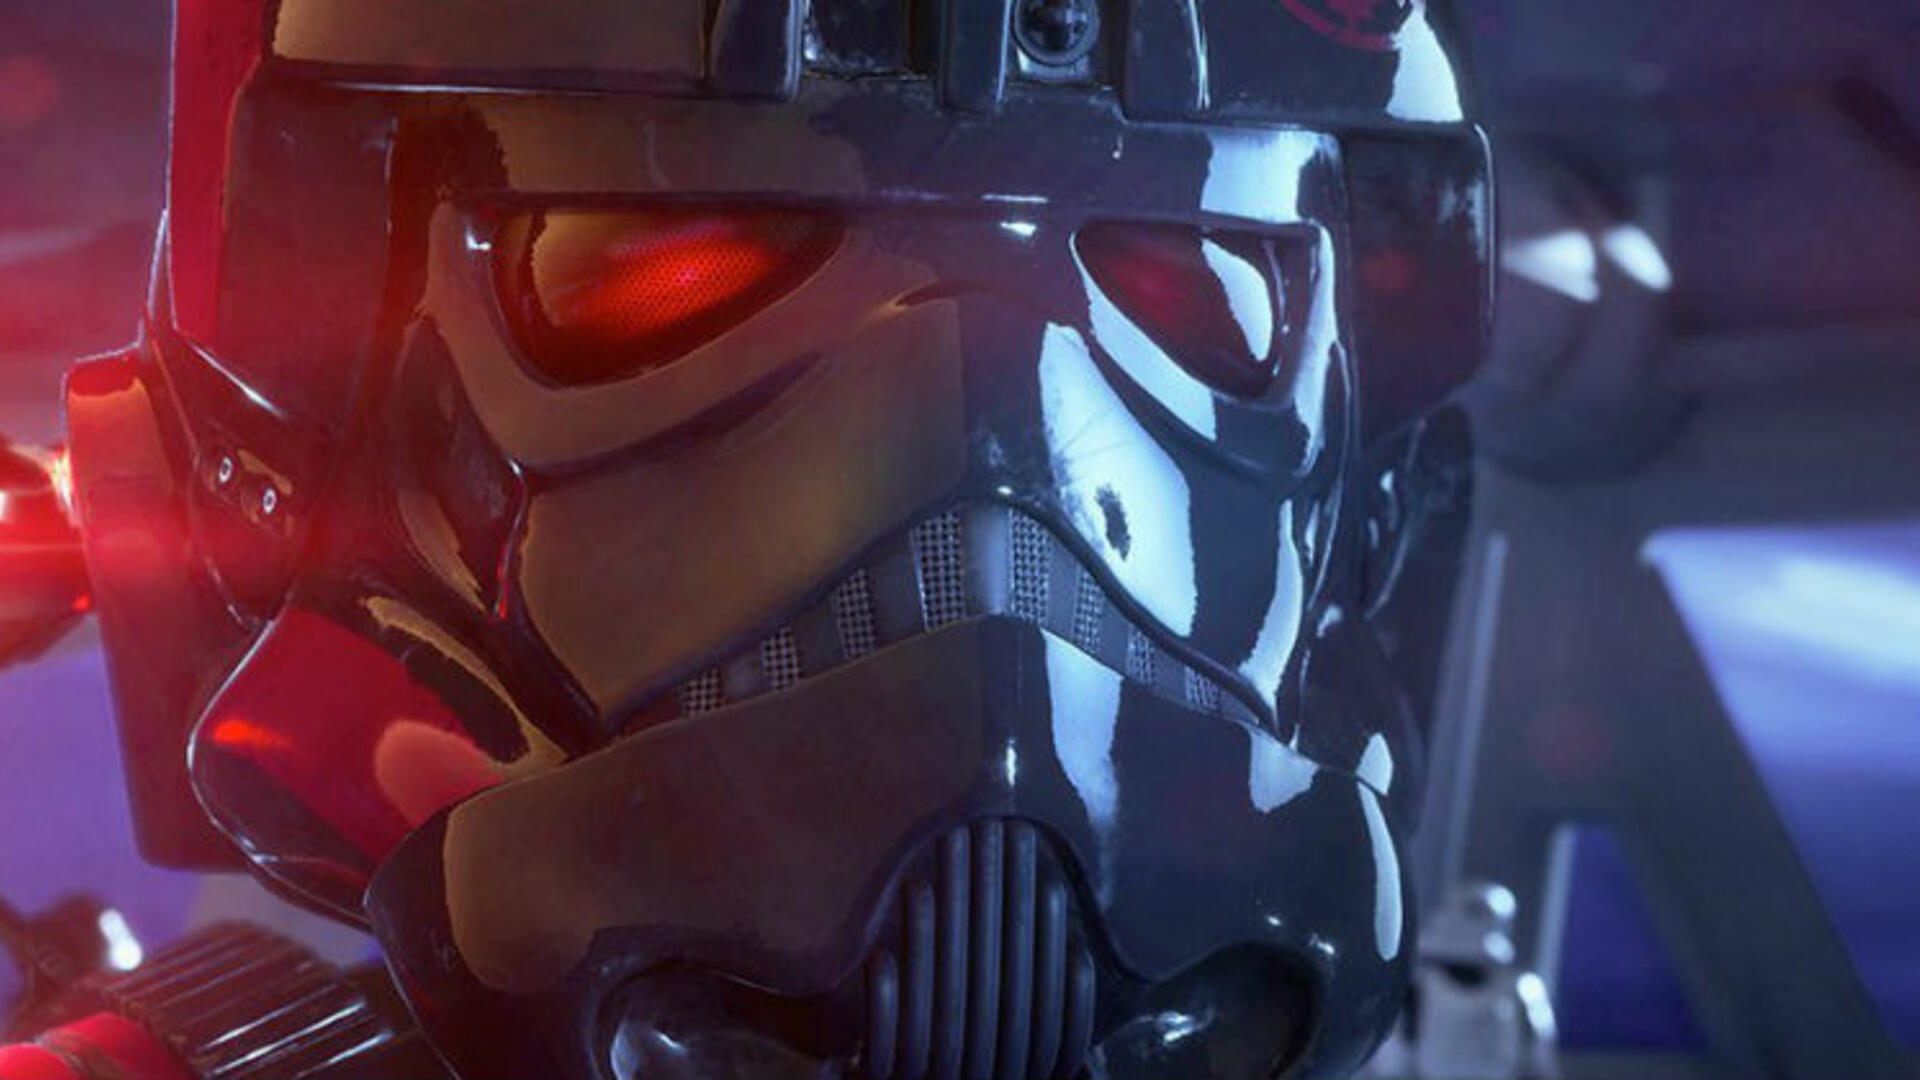 Star Wars Battlefront 2 Will Have Clone Wars Content in 2018